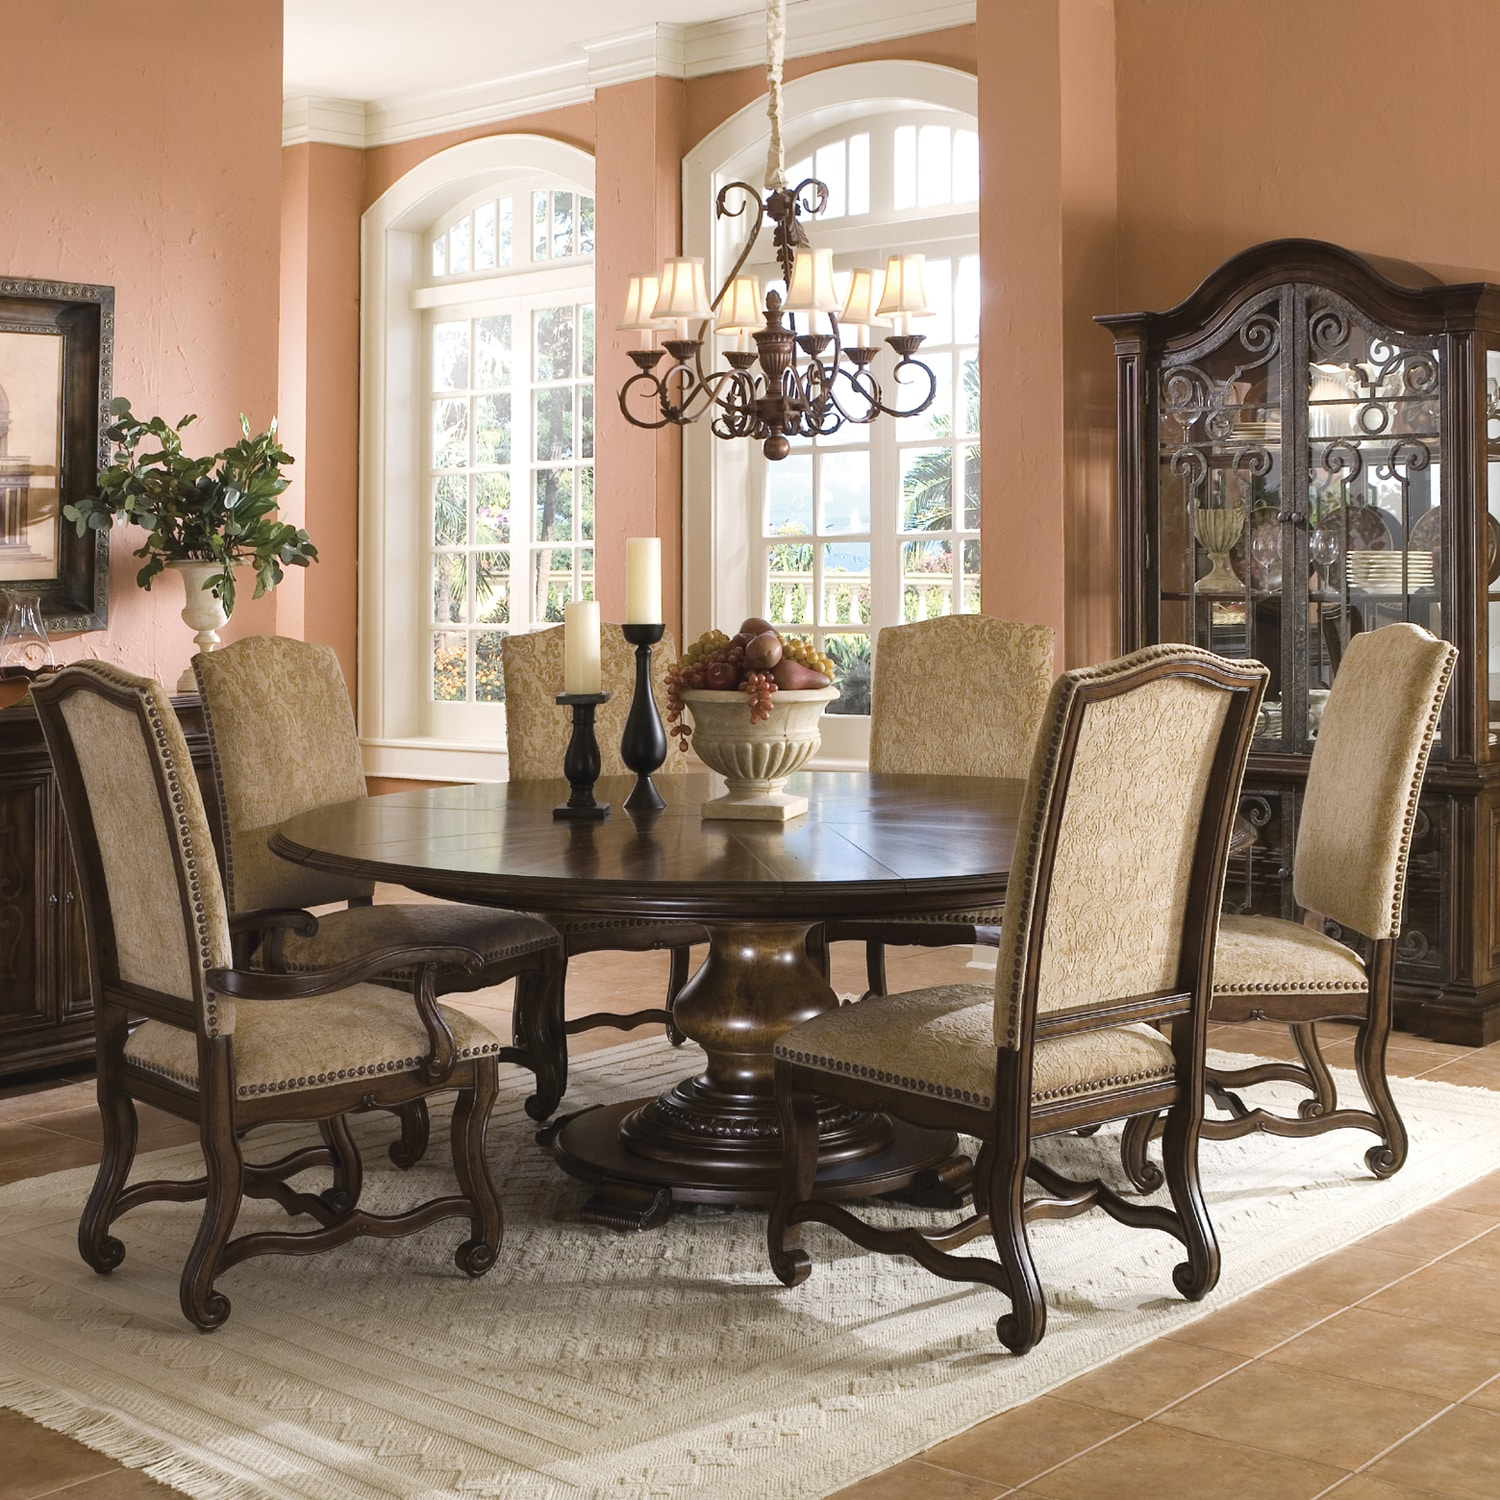 A R T Furniture Coronado 7 Piece Round Table Dining Set Free Shipping Today 7304981